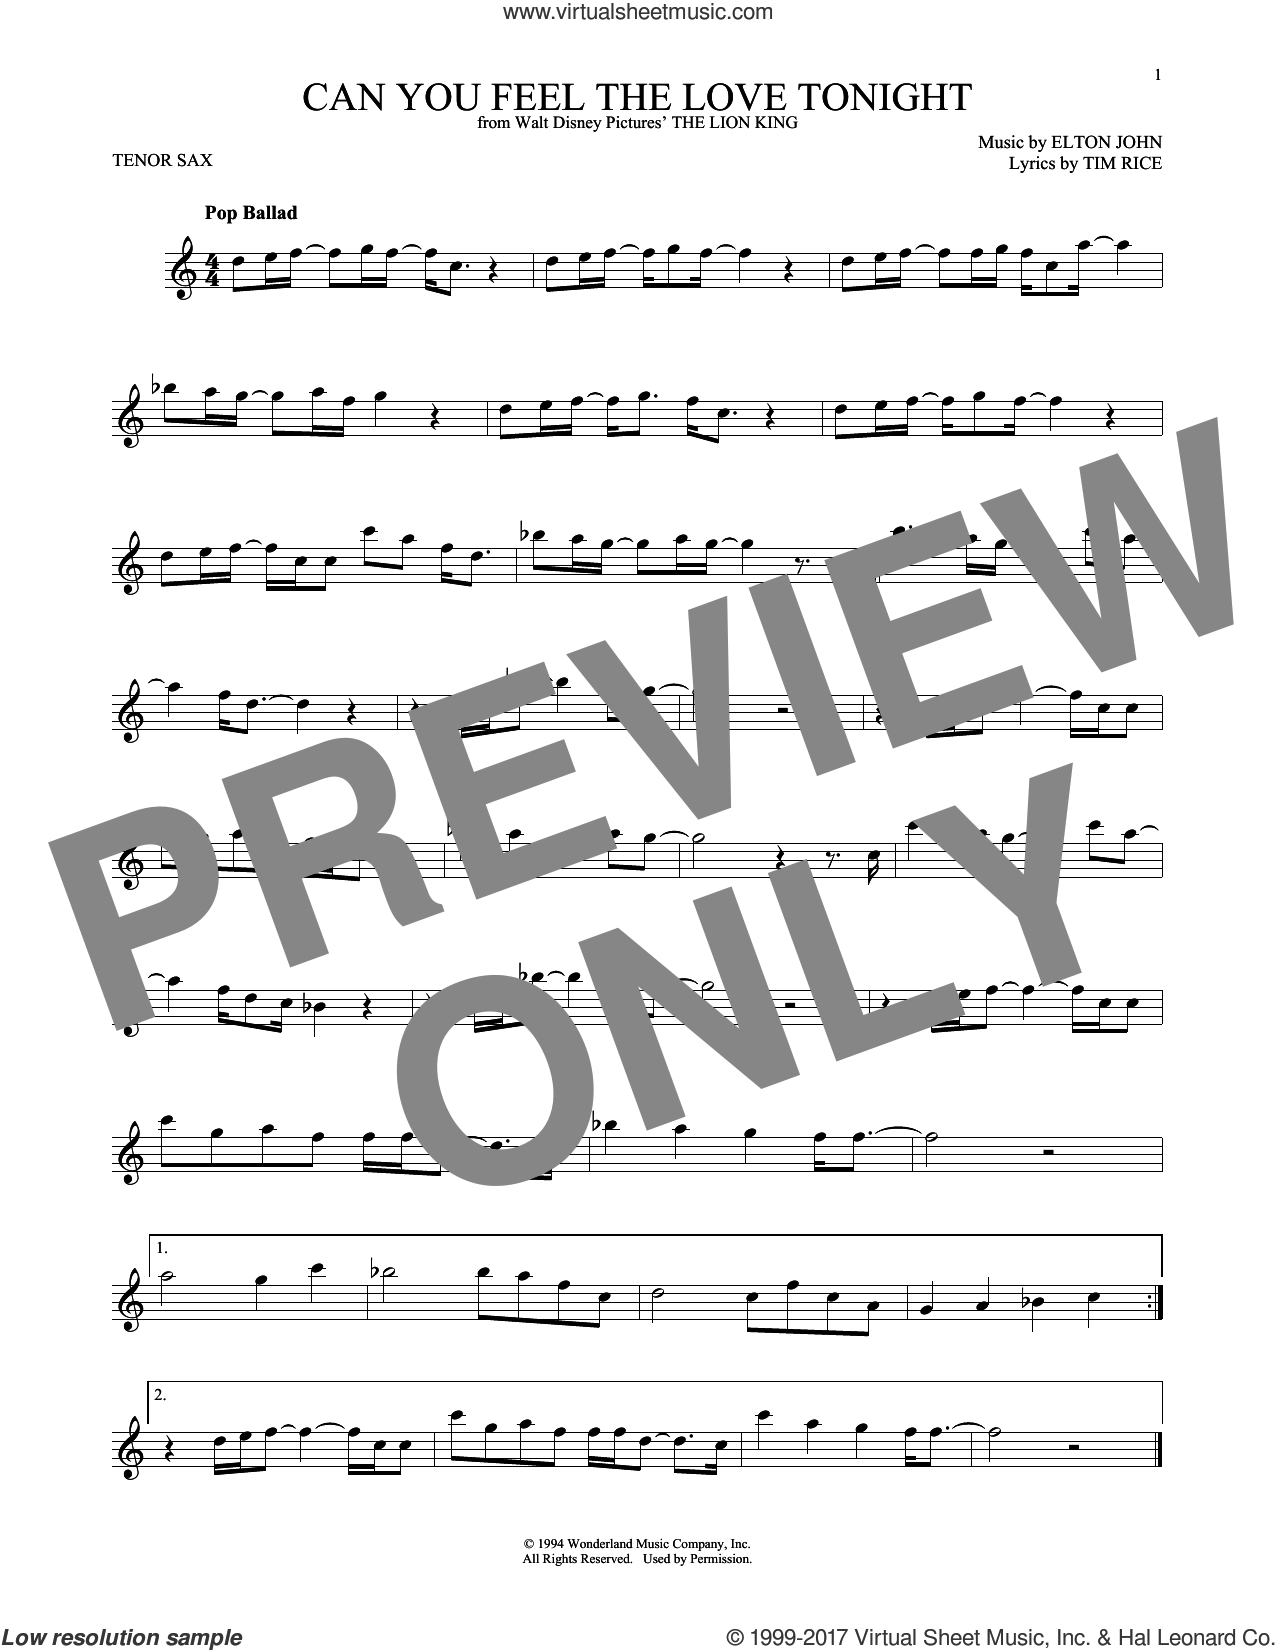 Can You Feel The Love Tonight sheet music for tenor saxophone solo by Elton John and Tim Rice, intermediate skill level